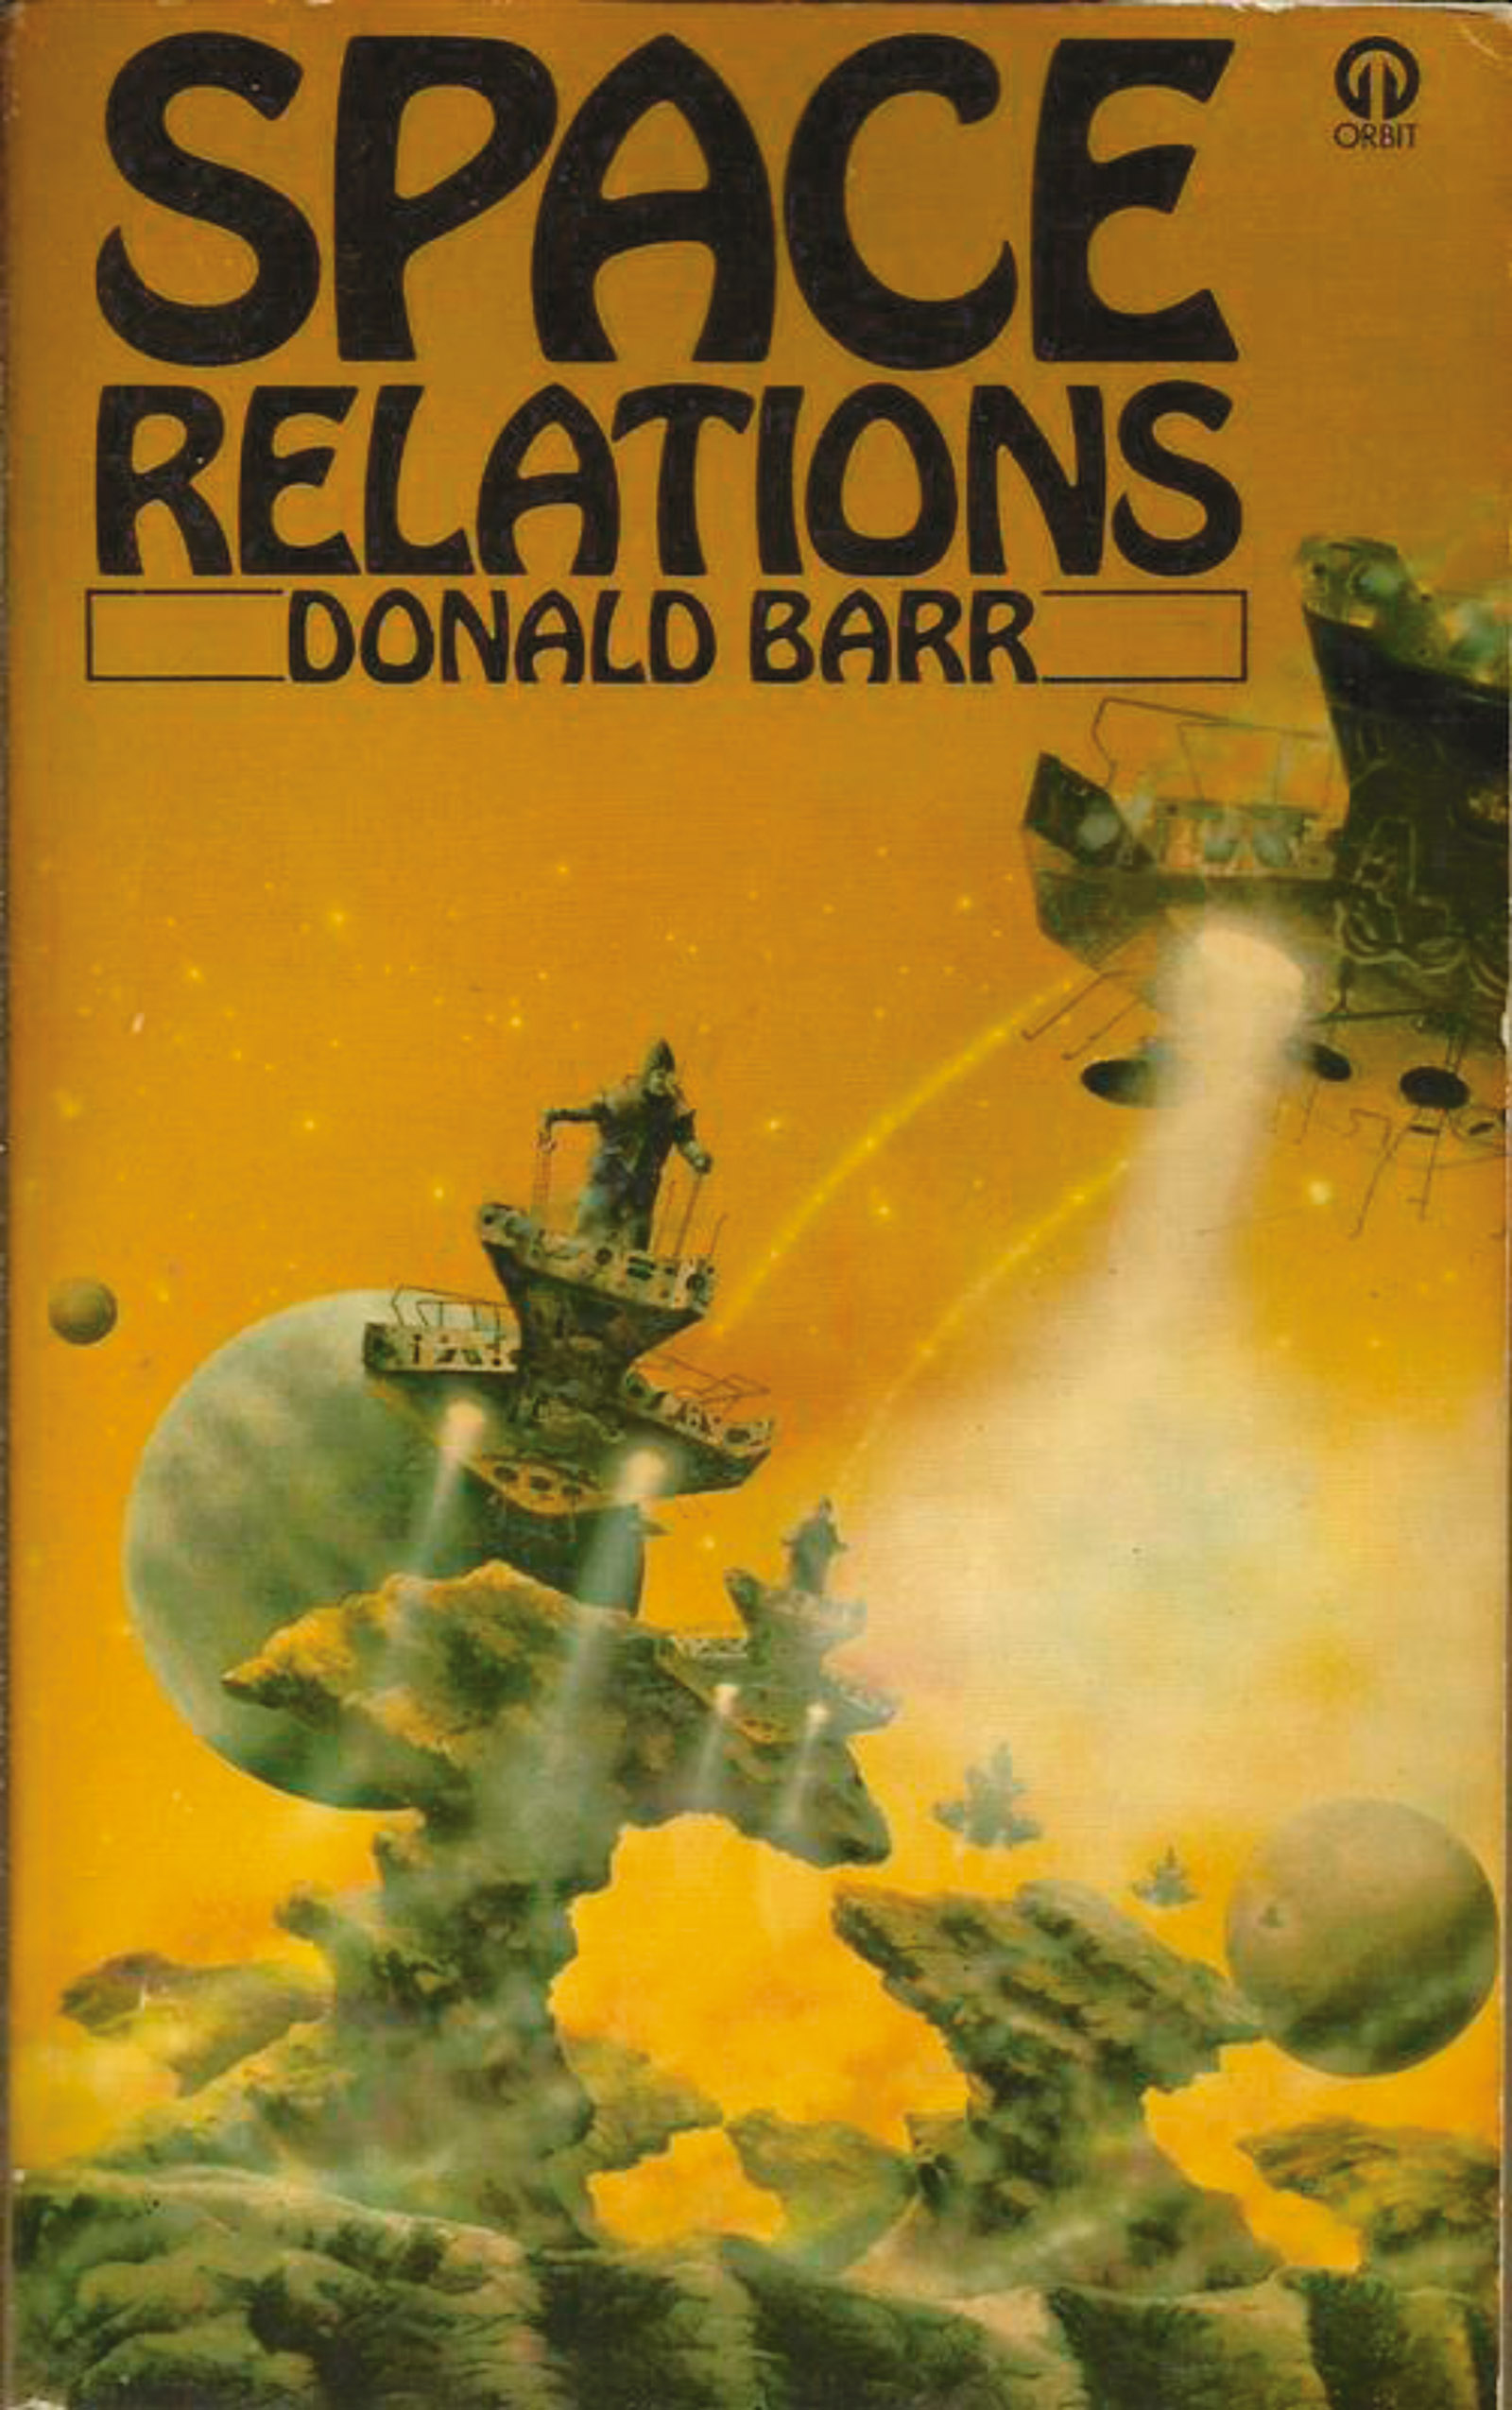 The British cover of Donald Barr's 1973 novel Space Relations